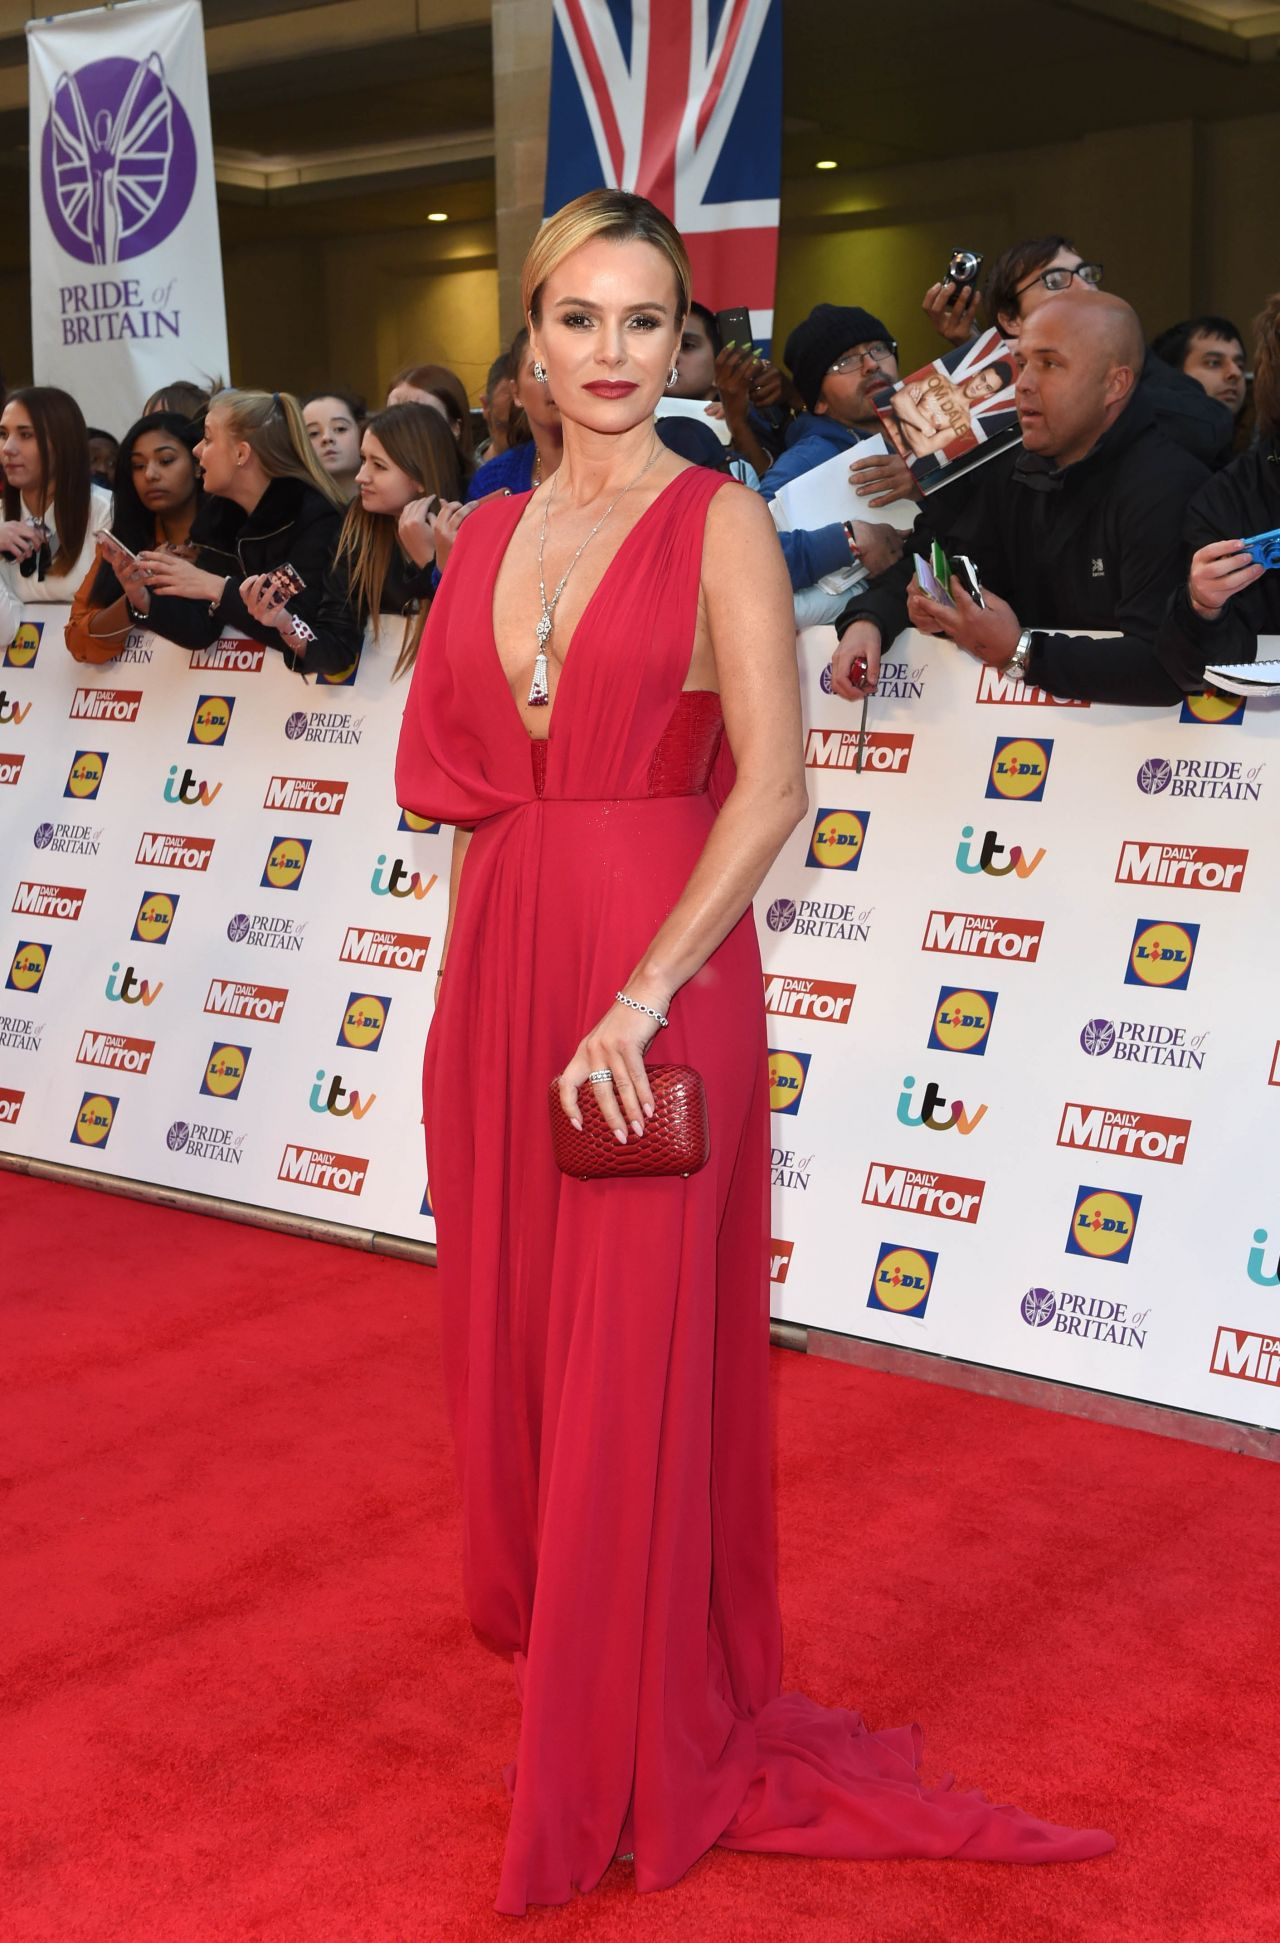 amanda-holden-pride-of-britain-awards-2015-in-london_2